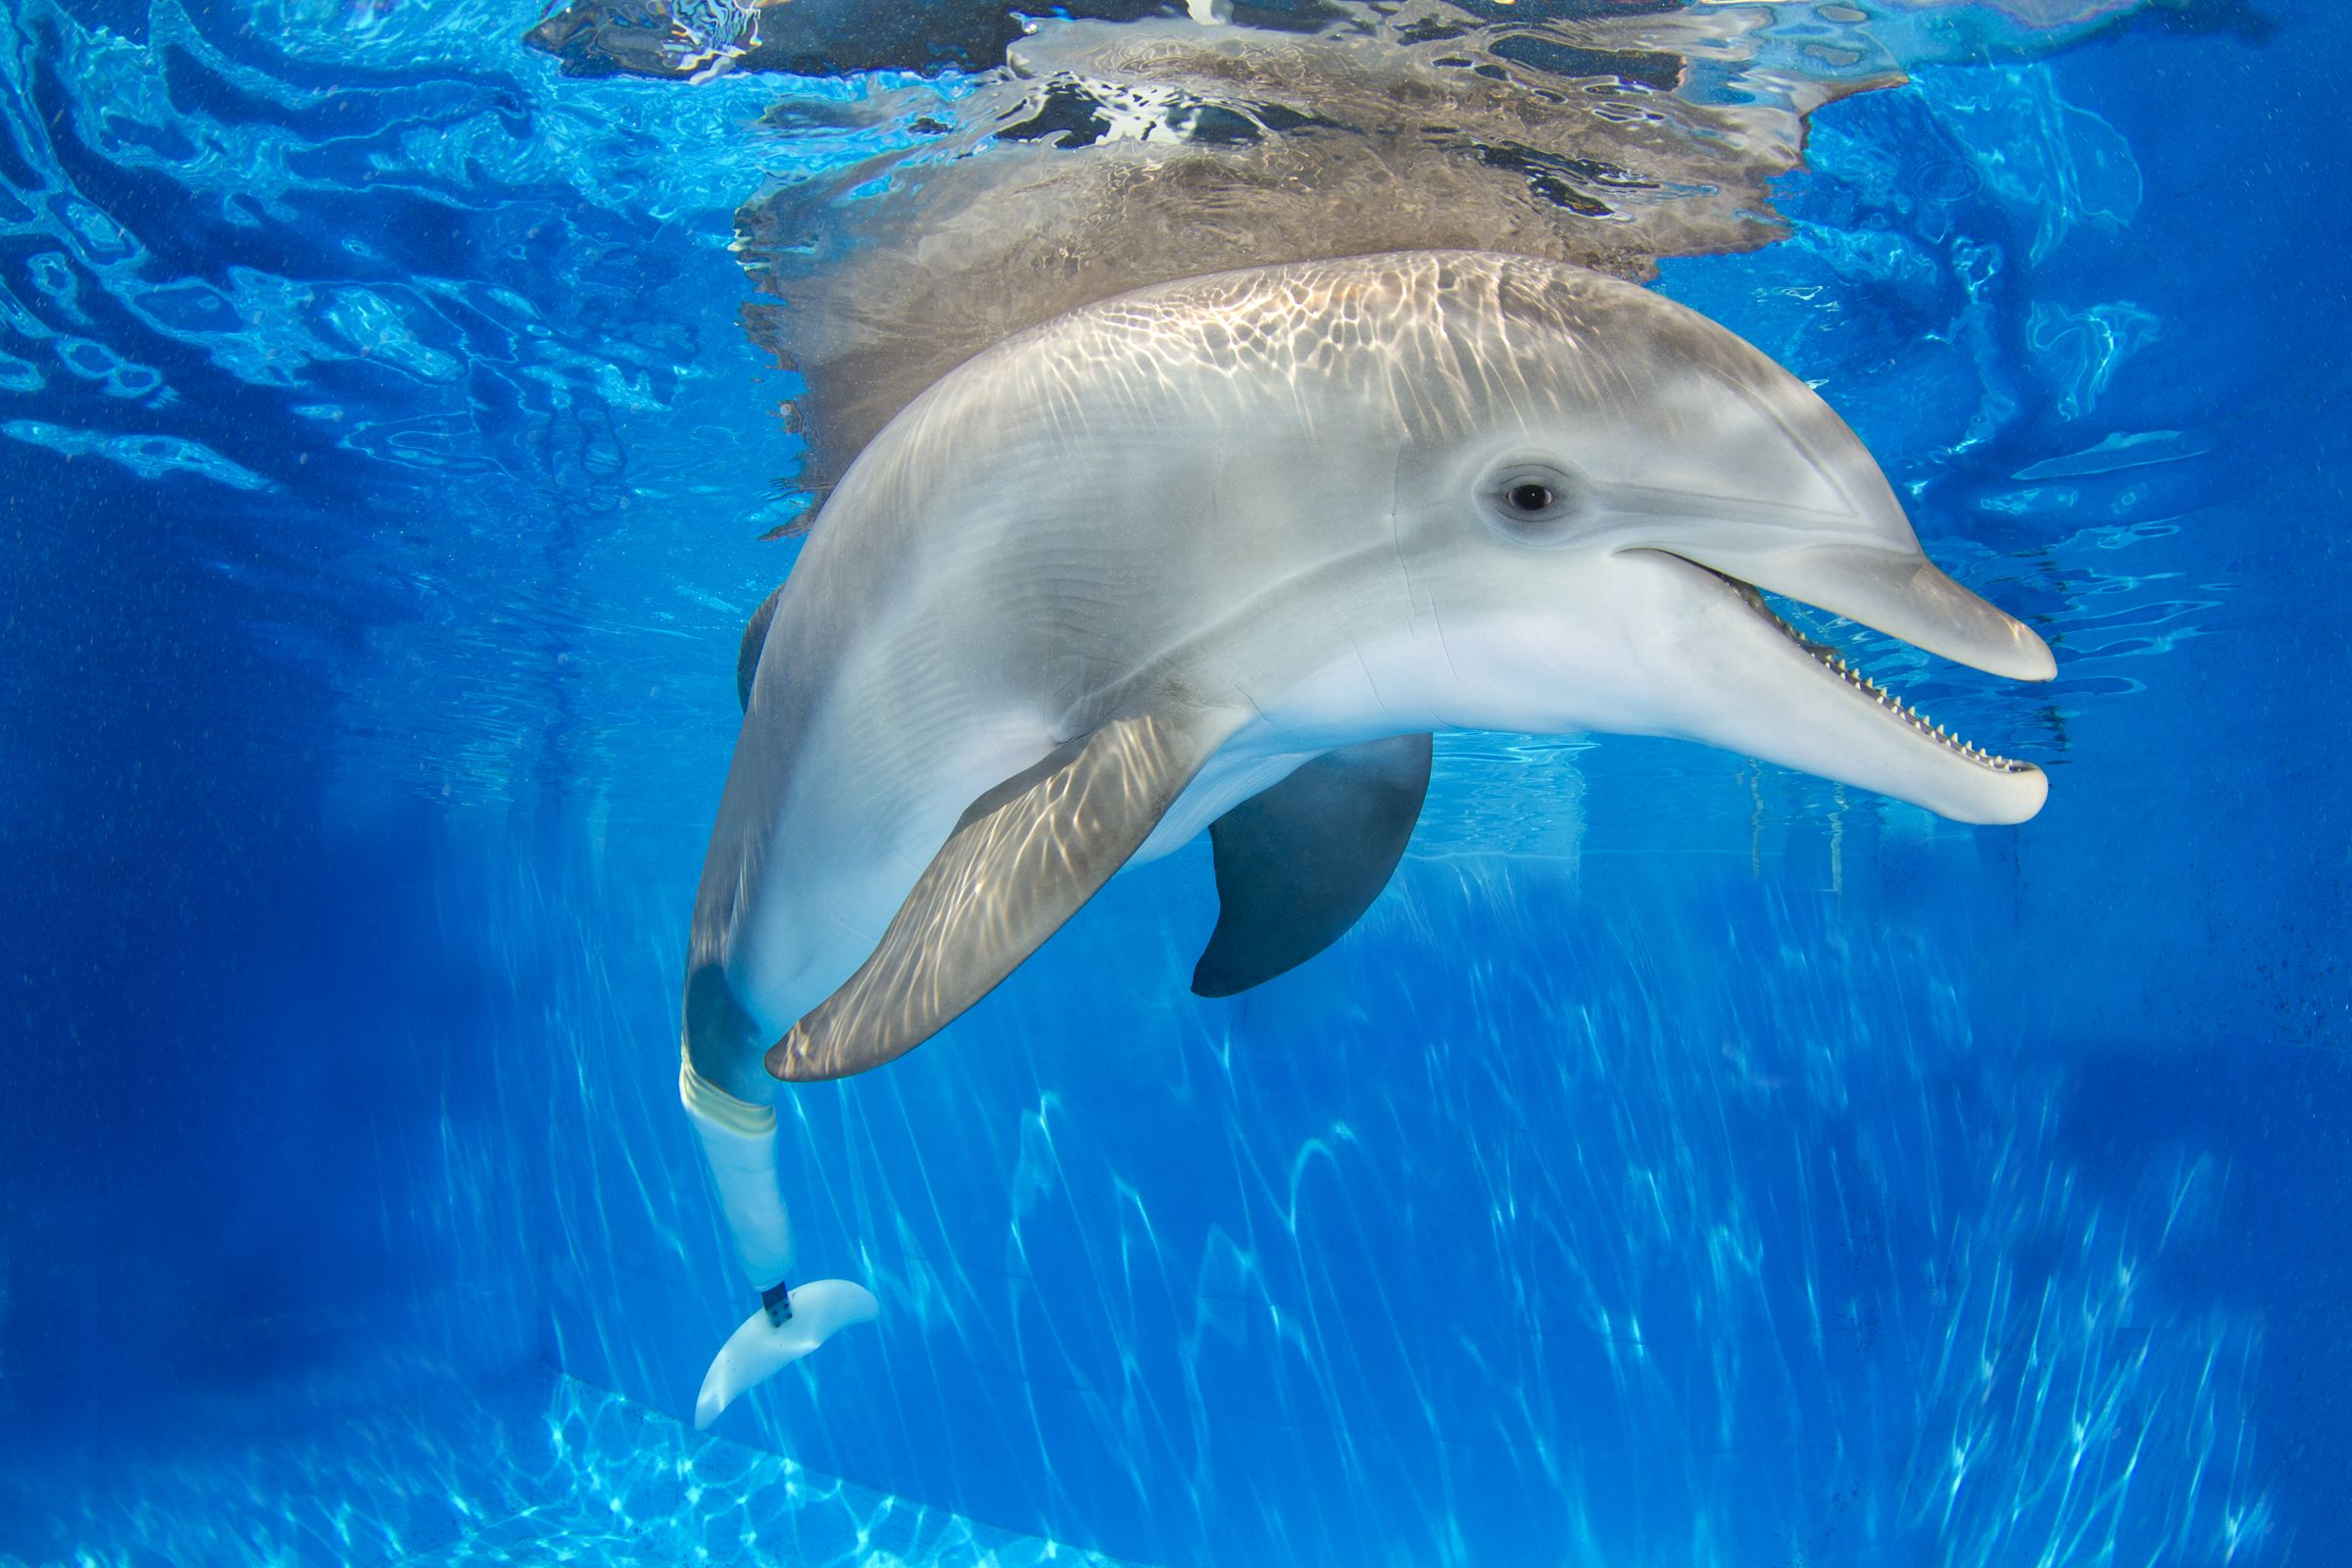 Winter dolphin at Clearwater Marine Aquarium.  www.seewinter.com  Photo credit: CMA